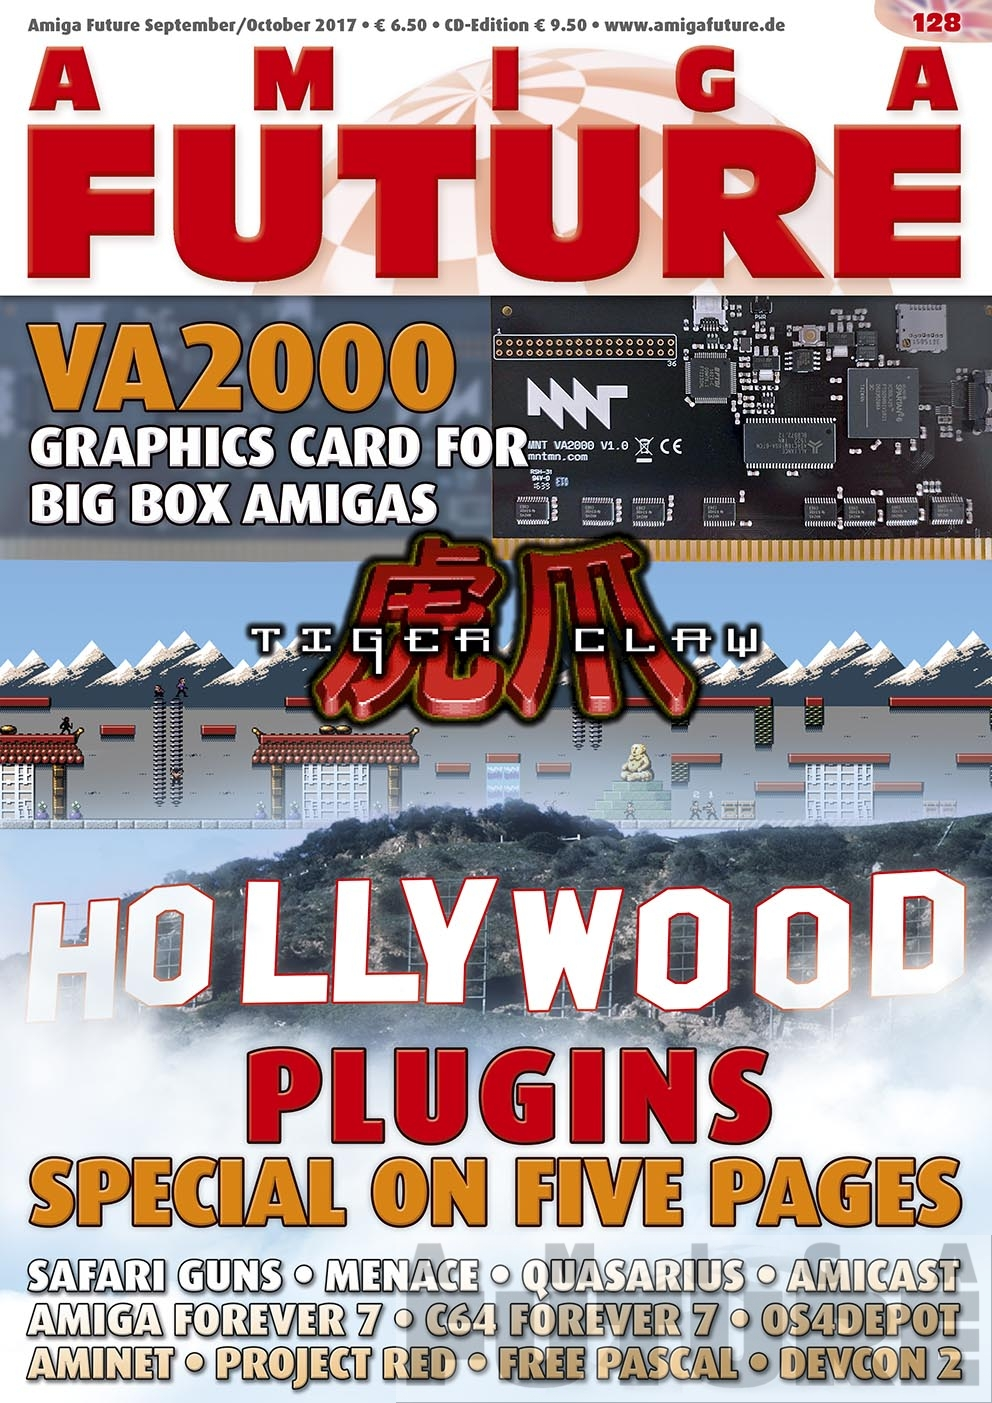 Amiga Future Issue 128 (English)